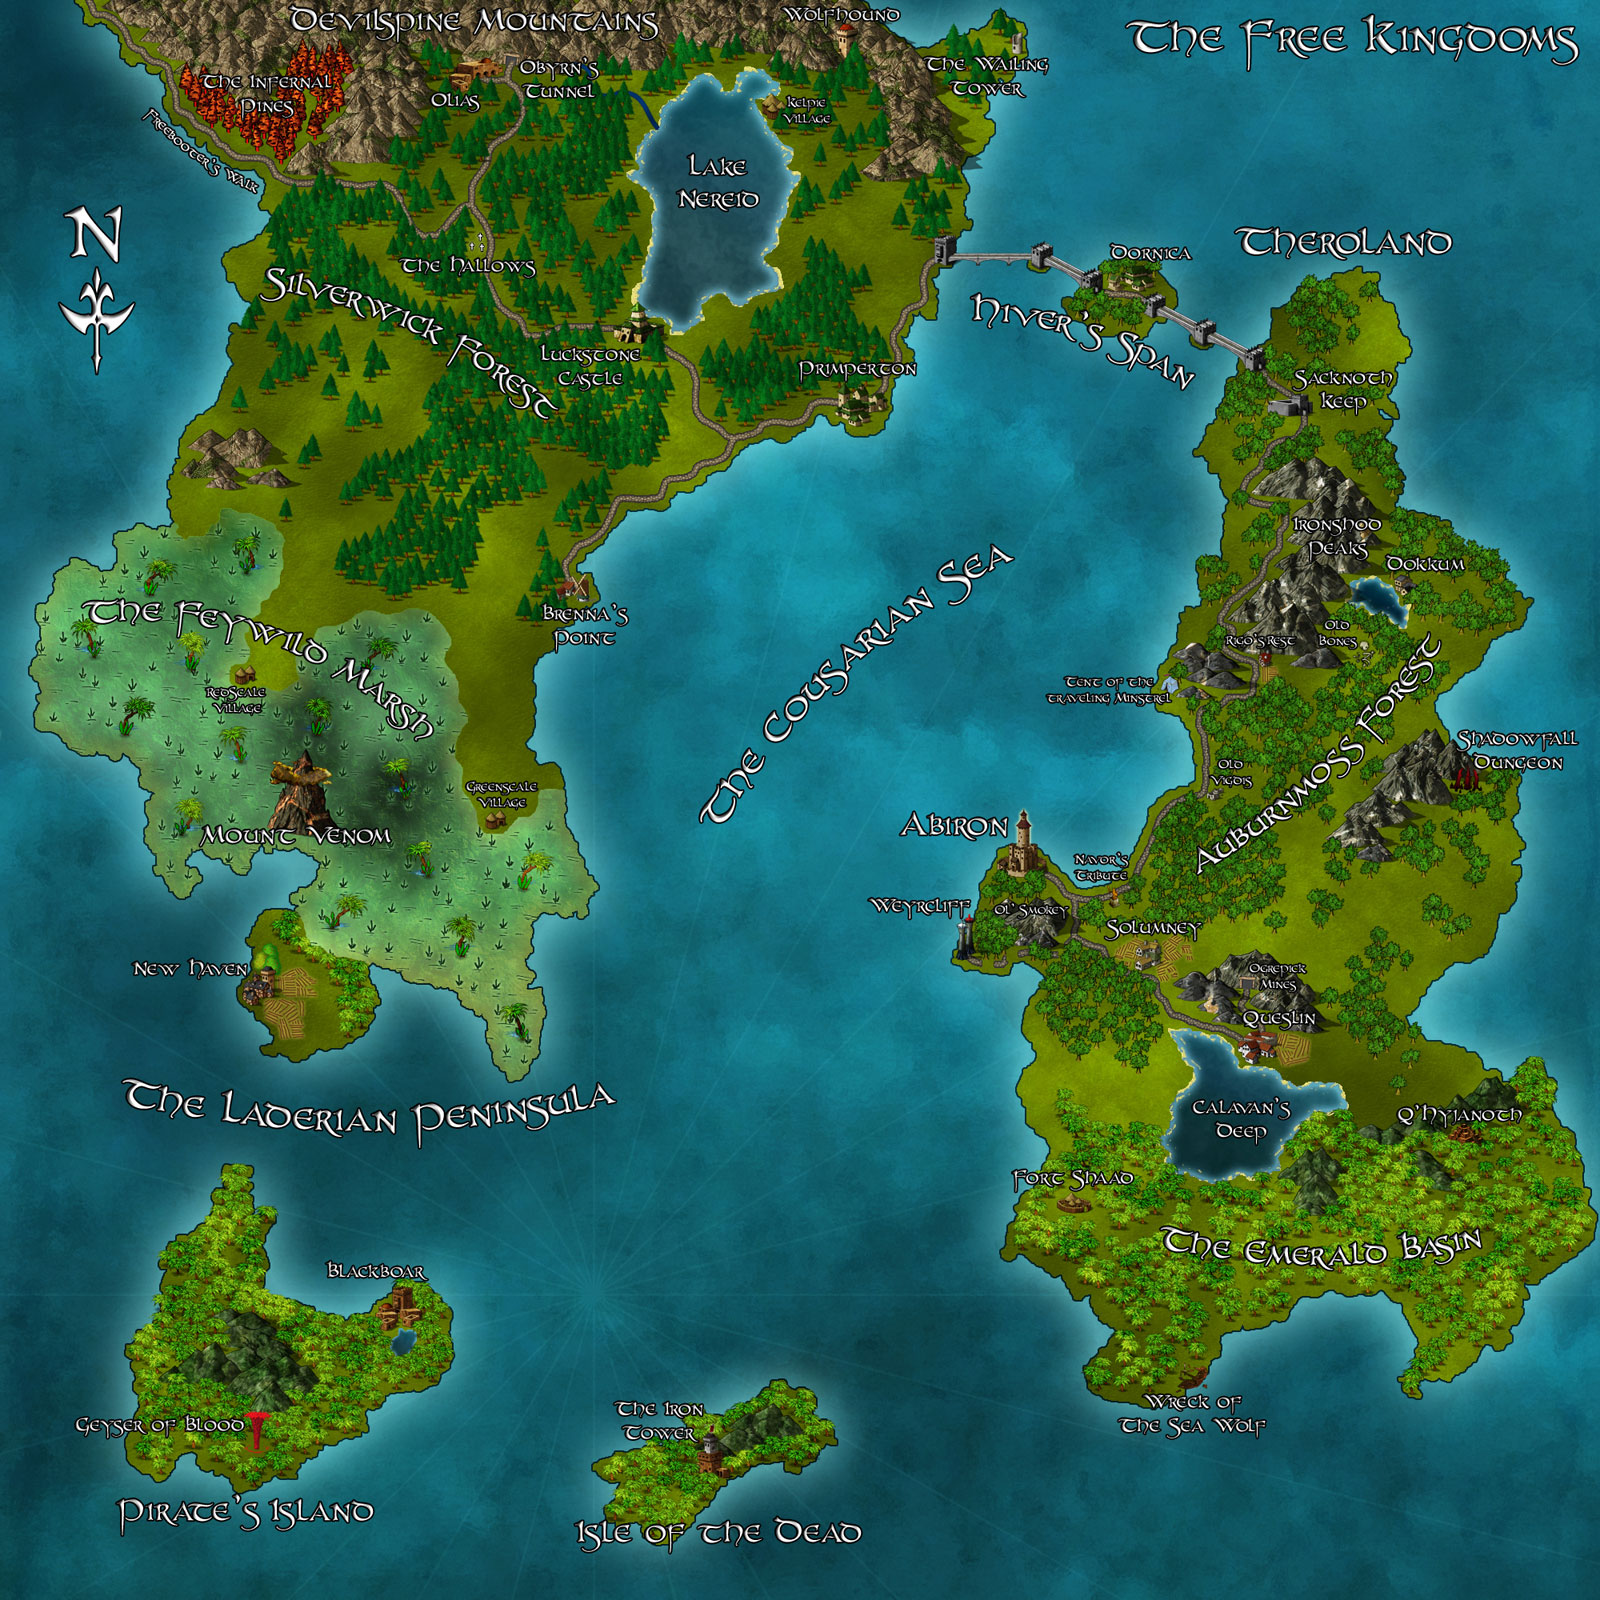 Rollanddonatos blog travel green fish relief map generator gumiabroncs Choice Image